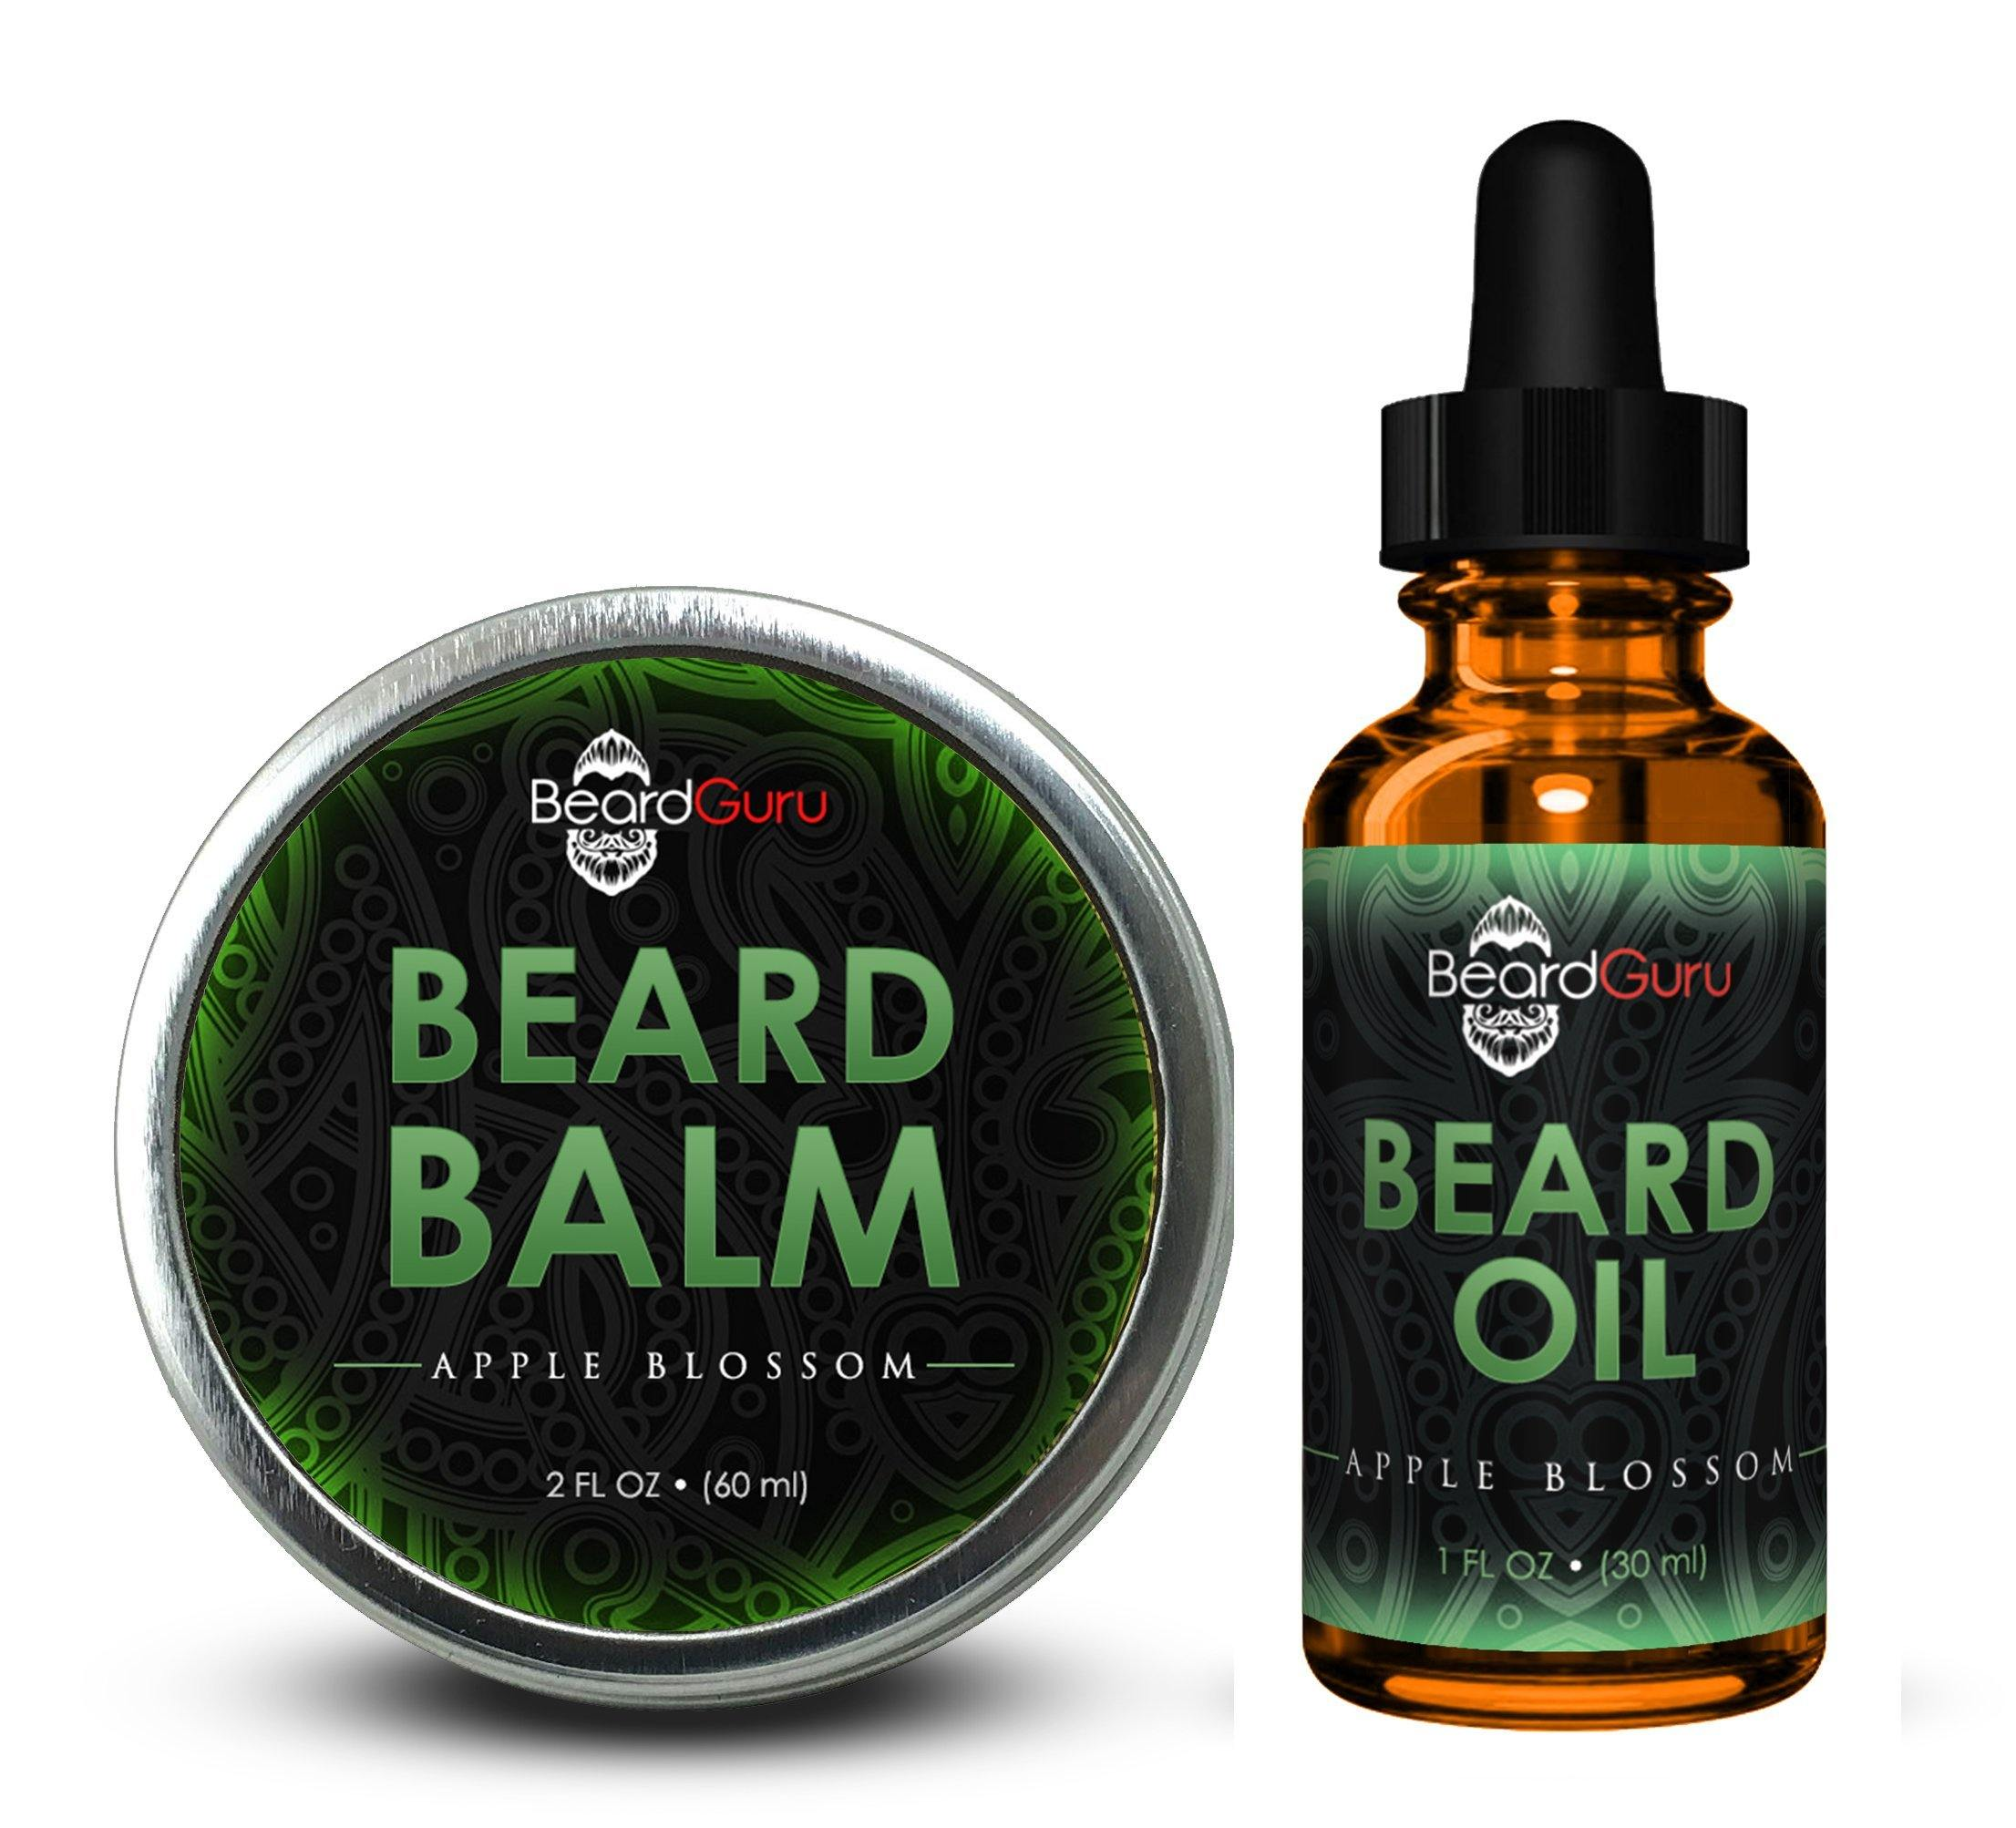 Apple Blossom Beard Balm